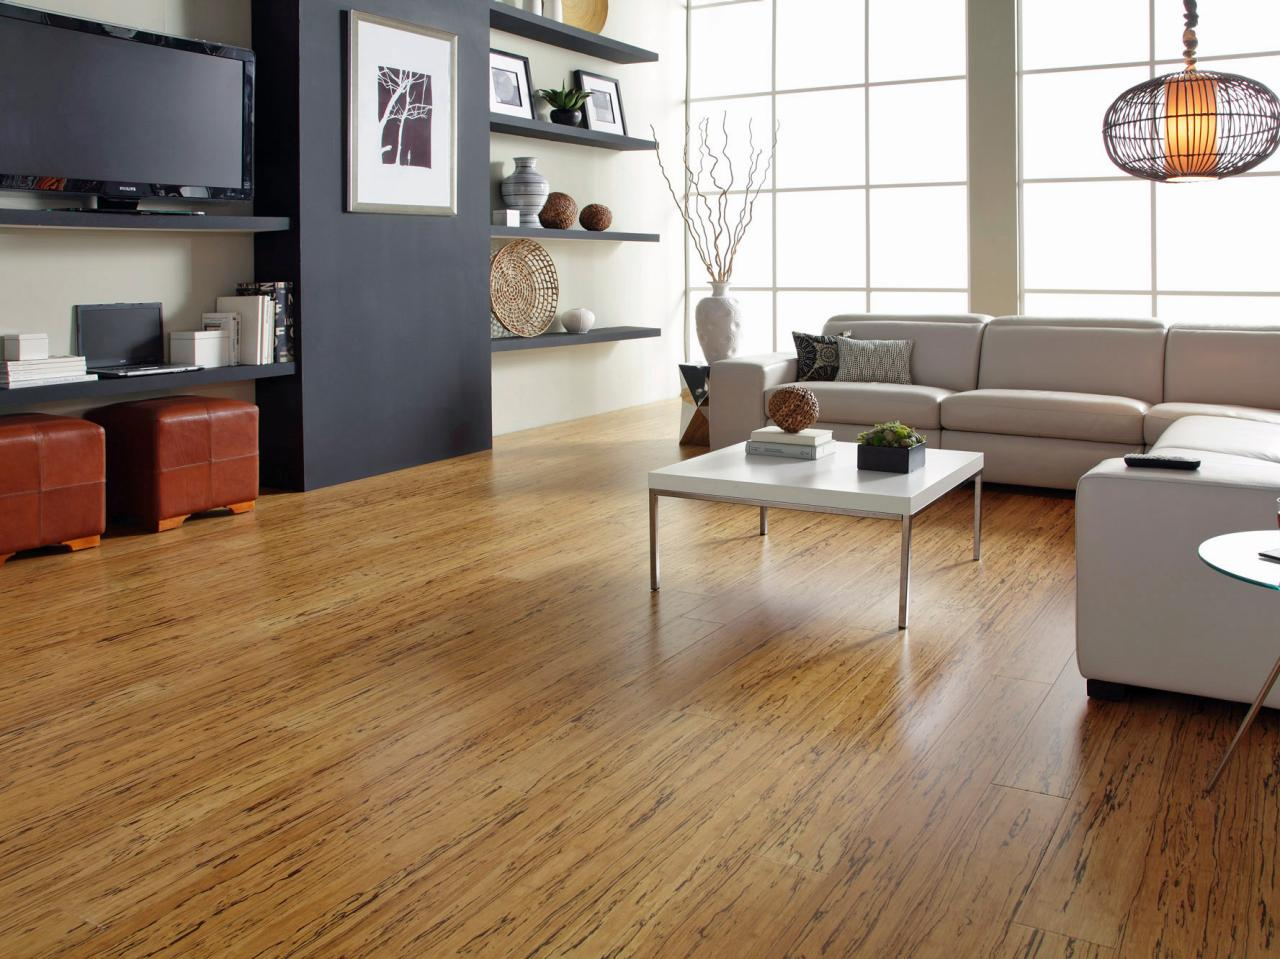 modern laminate floor design with